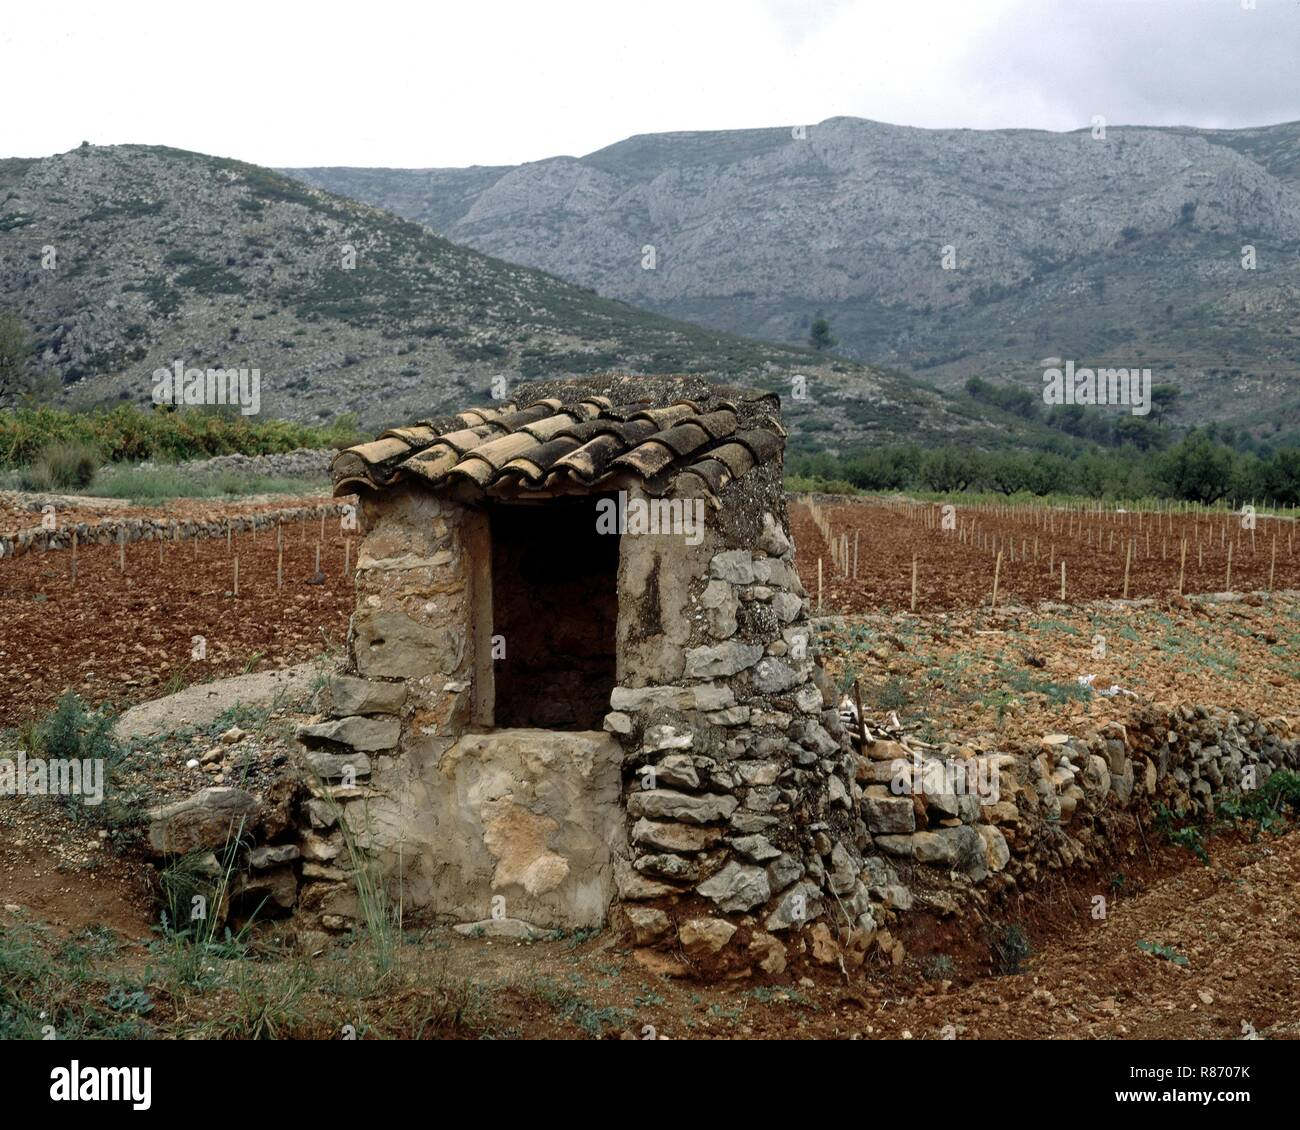 Map Of Spain Jalon.Jalon Spain Stock Photos Jalon Spain Stock Images Alamy